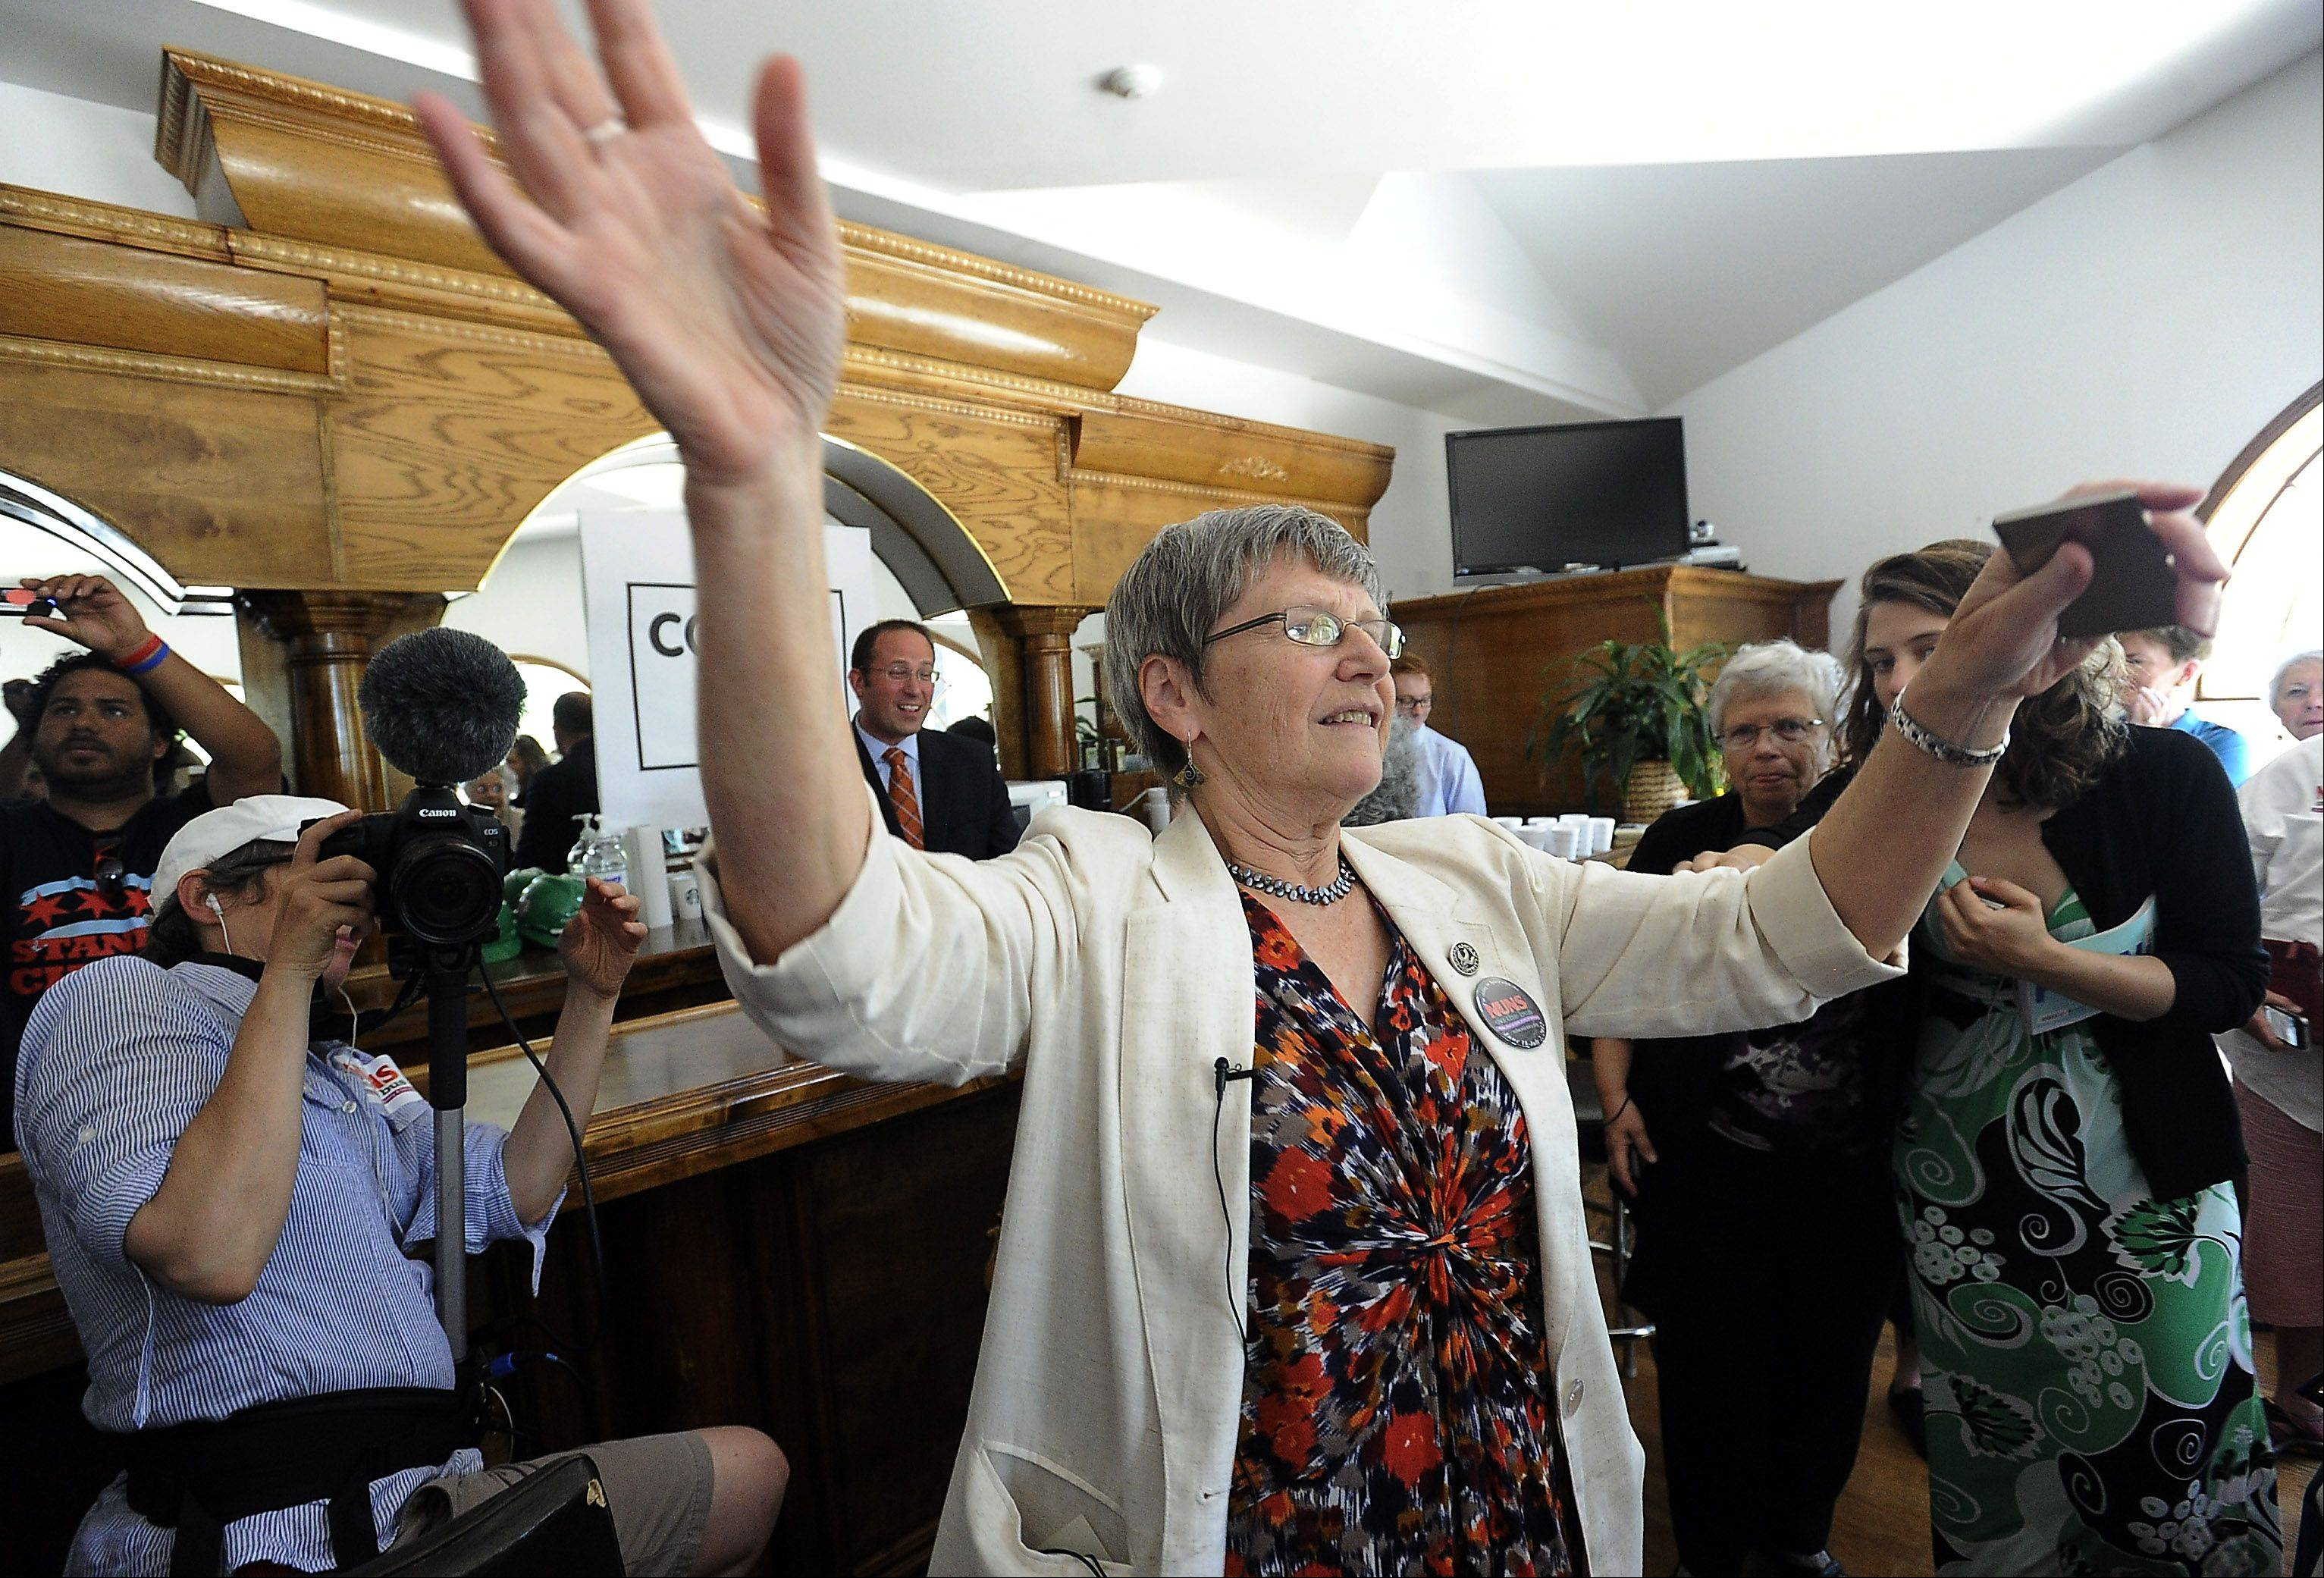 Sister Simone Campbell, of the Nuns on the Bus tour, gathers the crowd that joined her in Congressman Joe Walsh headquarters in Fox Lake on Wednesday.